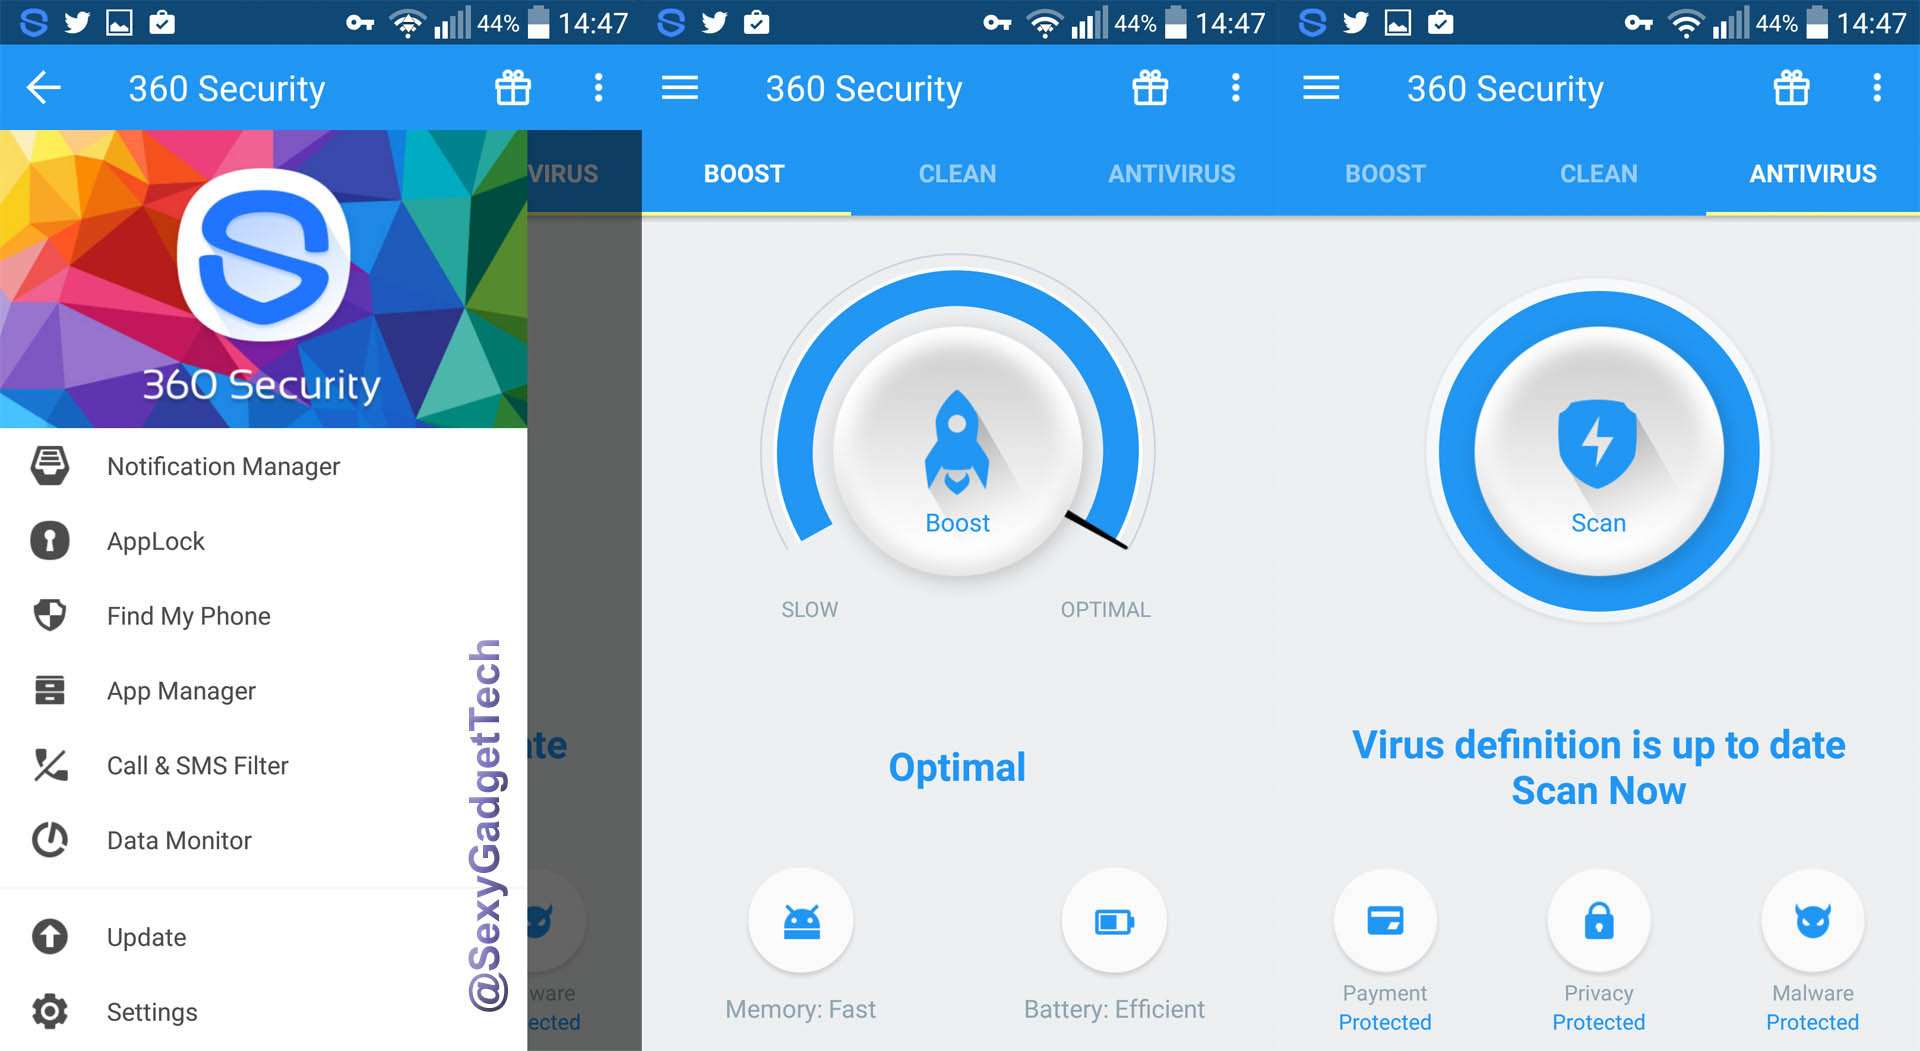 360 Security - System Tools FREE Android phone app